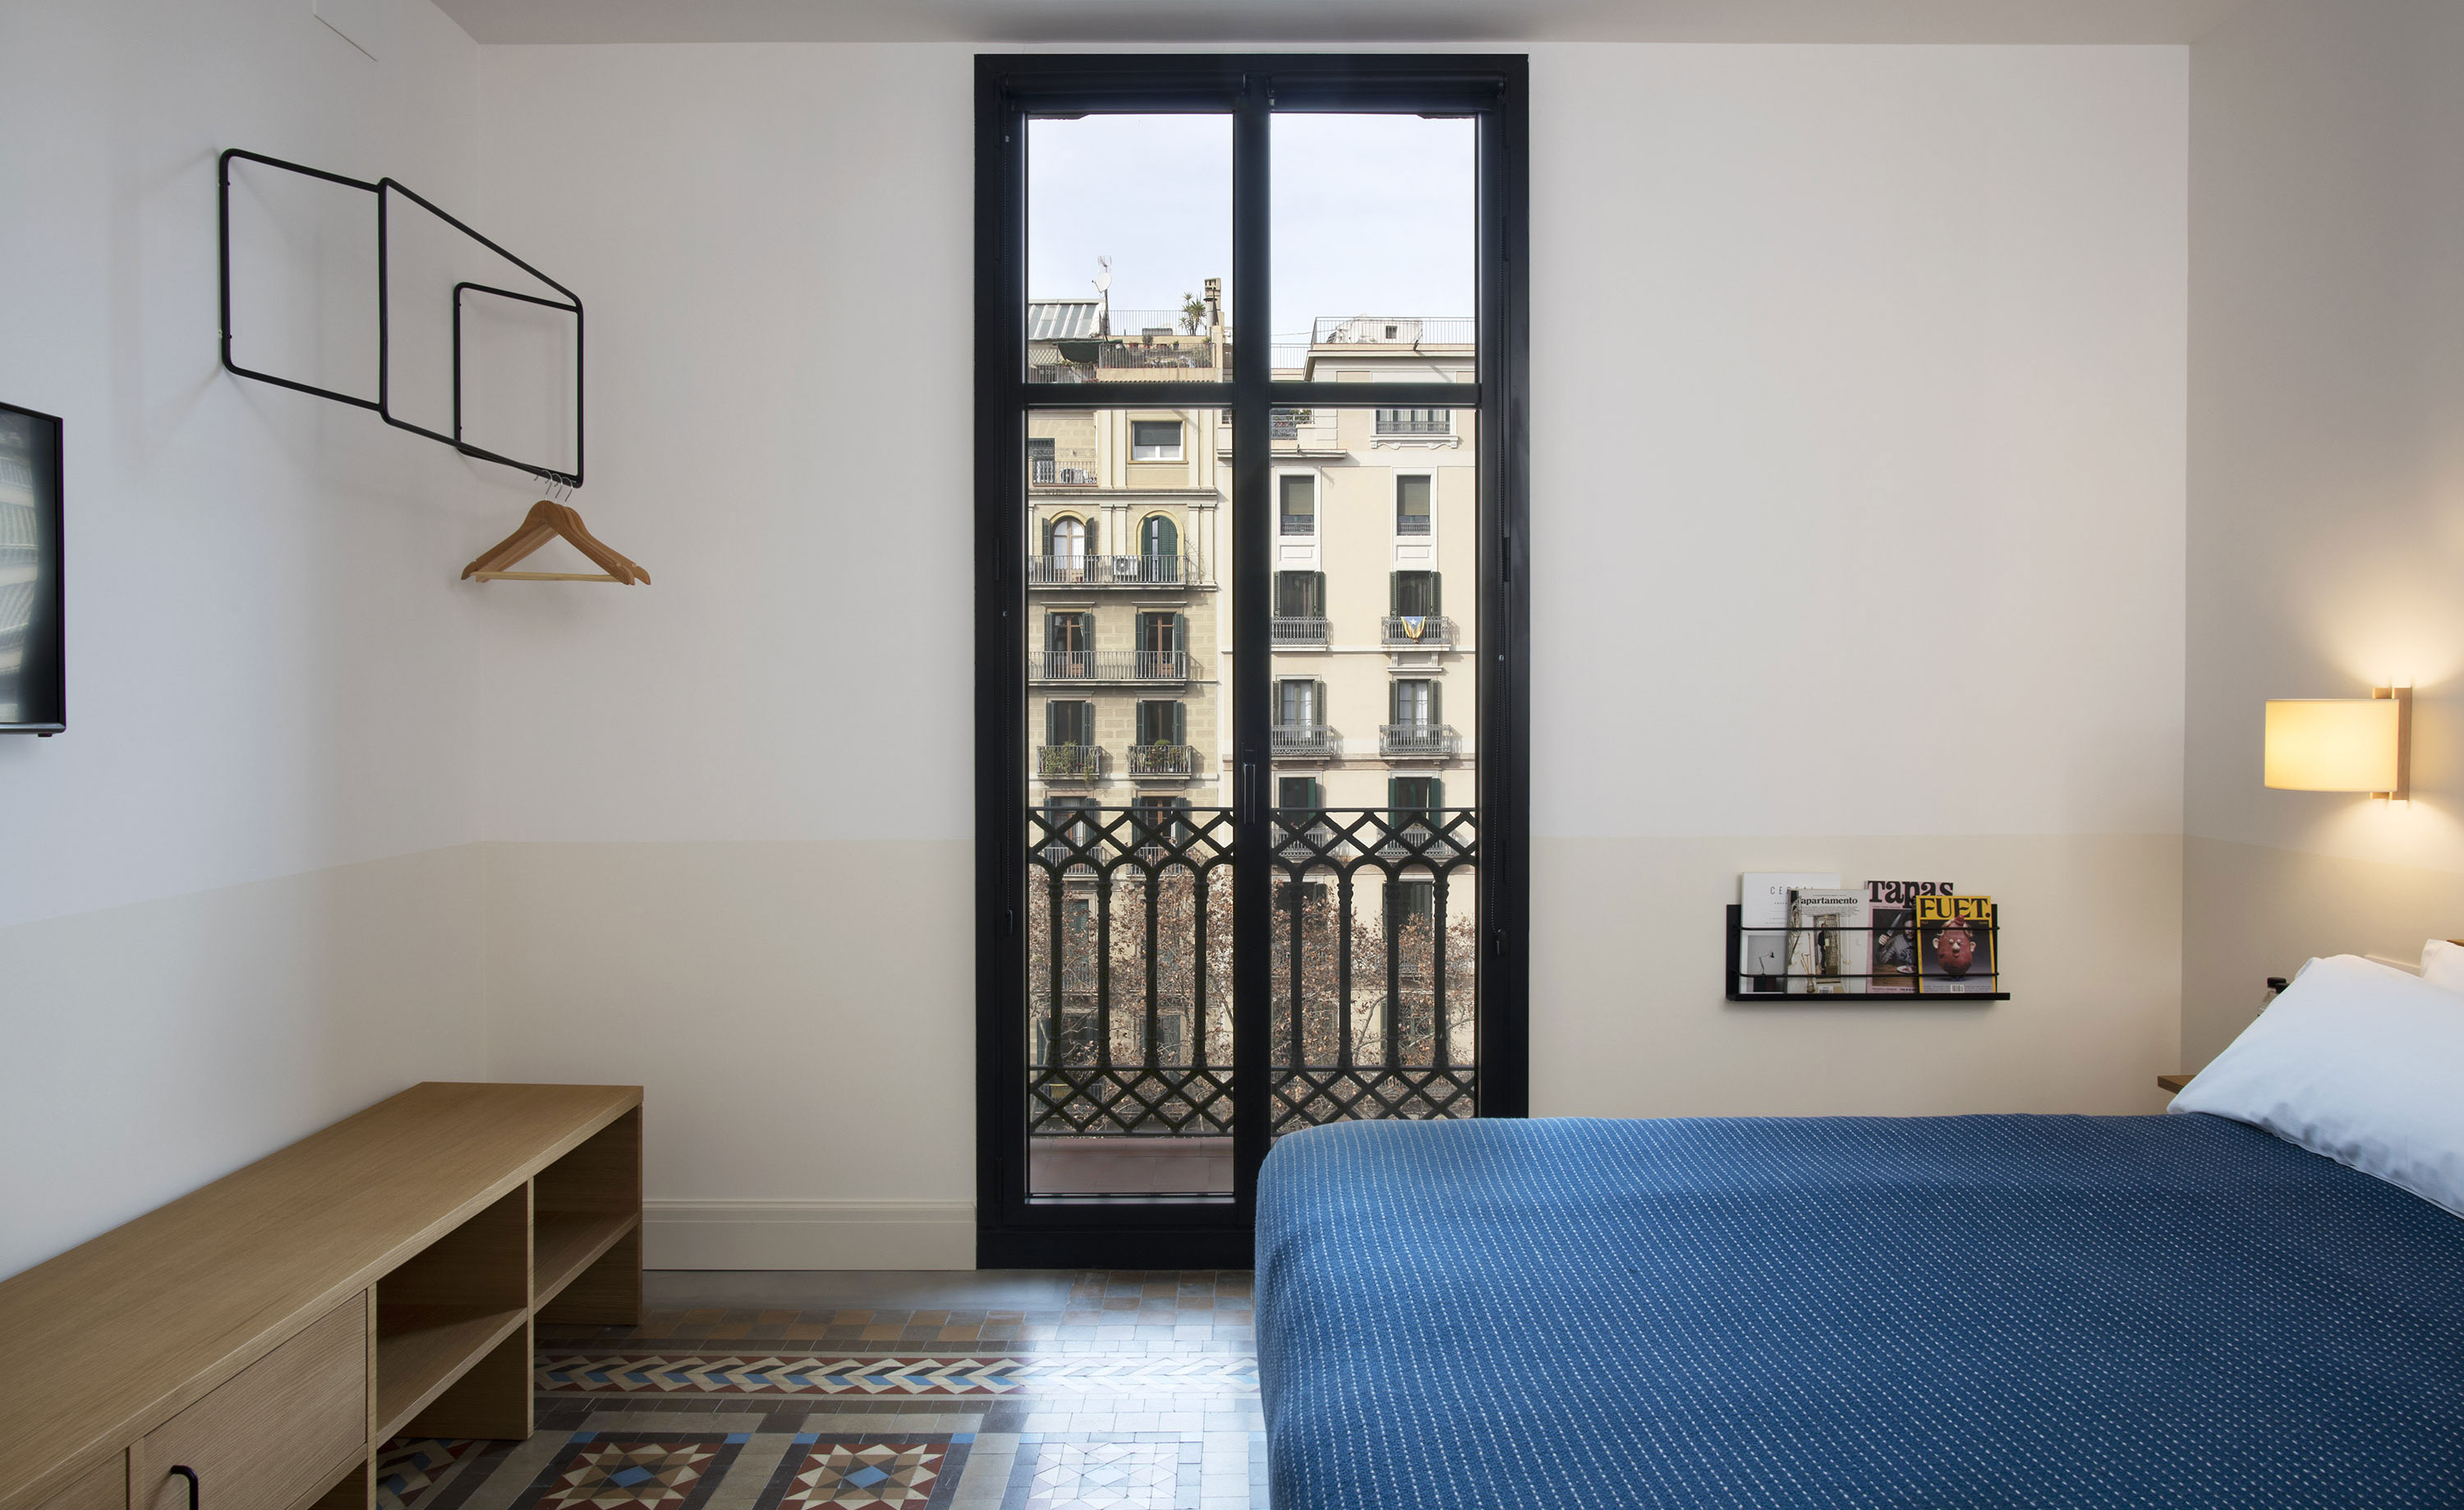 Casa bonay hotel review barcelona spain wallpaper for Design hotel barcelona